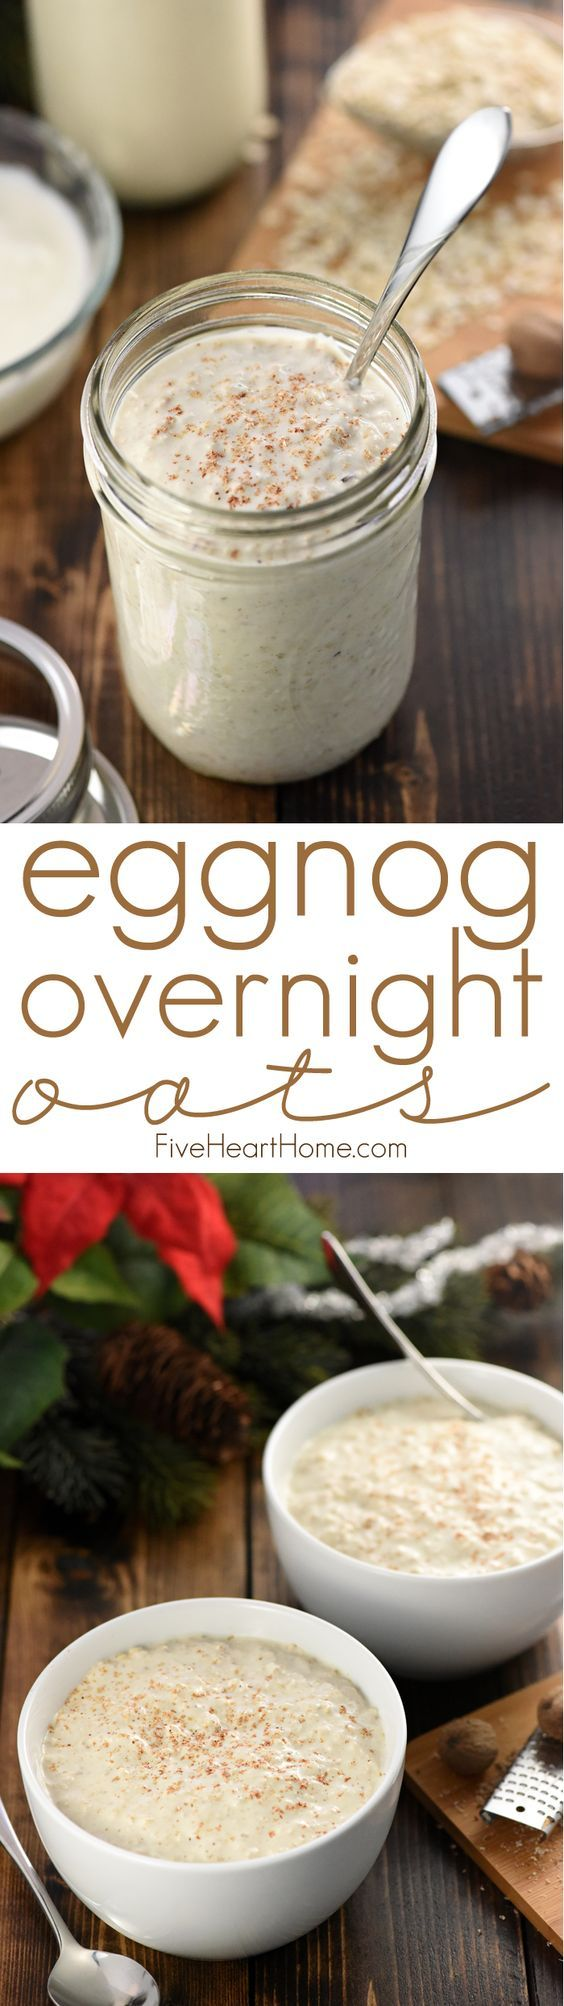 Eggnog Overnight Oats ~ with just five ingredients and two minutes of prep before bed, you can wake up to a creamy, wholesome, ready-to-eat holiday breakfast!   FiveHeartHome.com